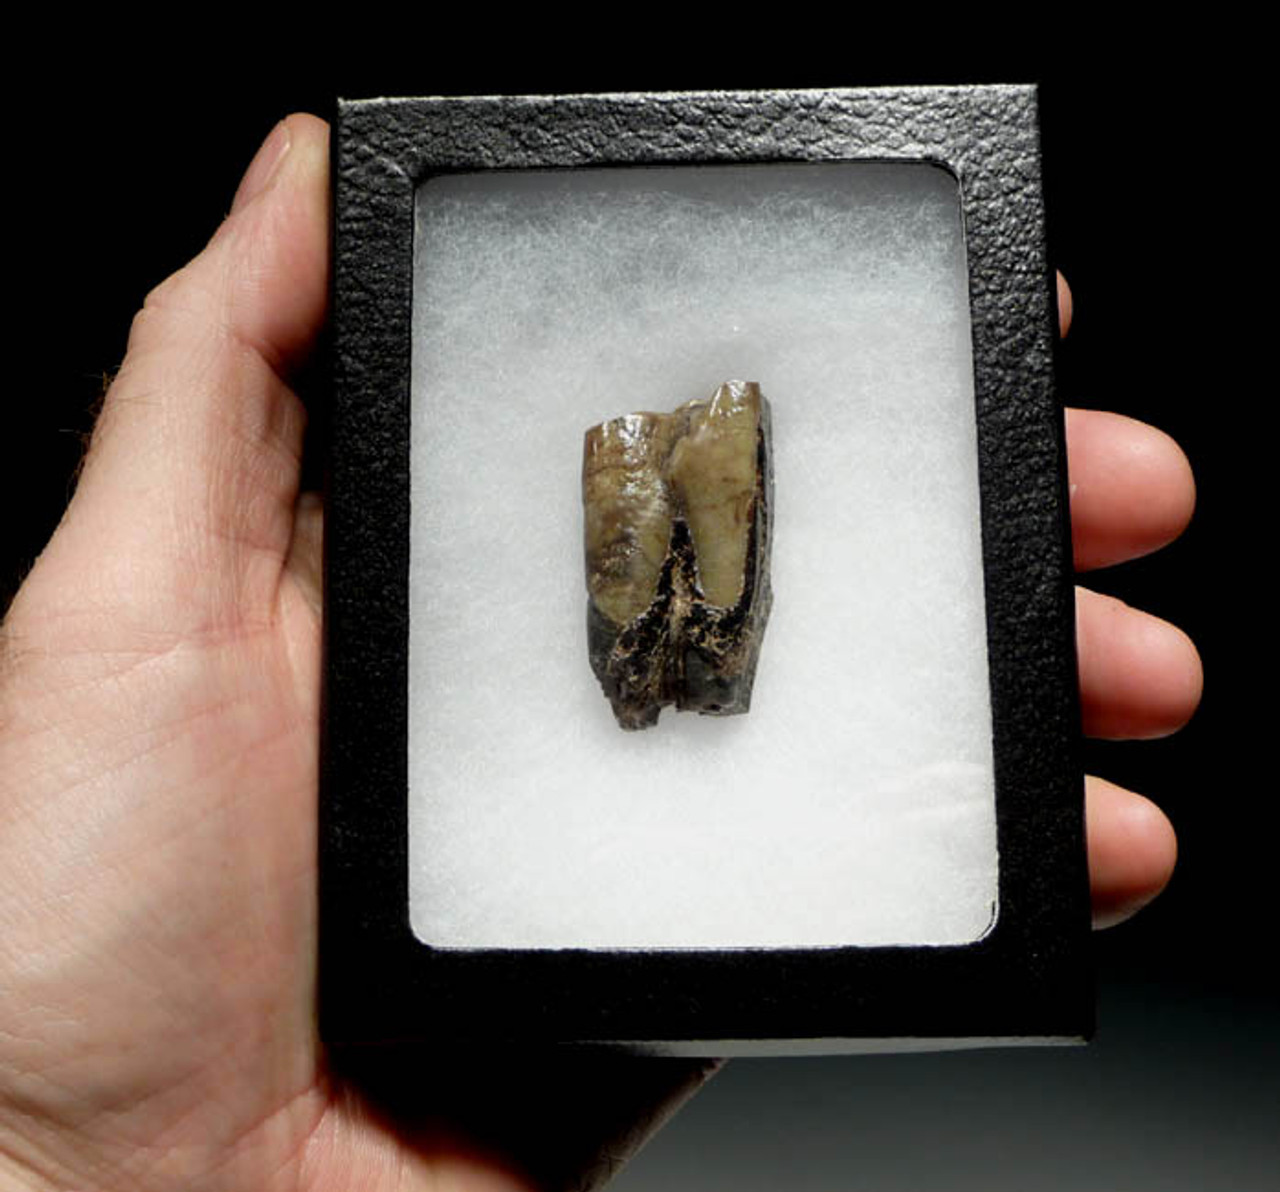 LMX019 - INTACT SOUTH AMERICAN TOXODON MOLAR TOOTH WITH PARTIAL ROOTS